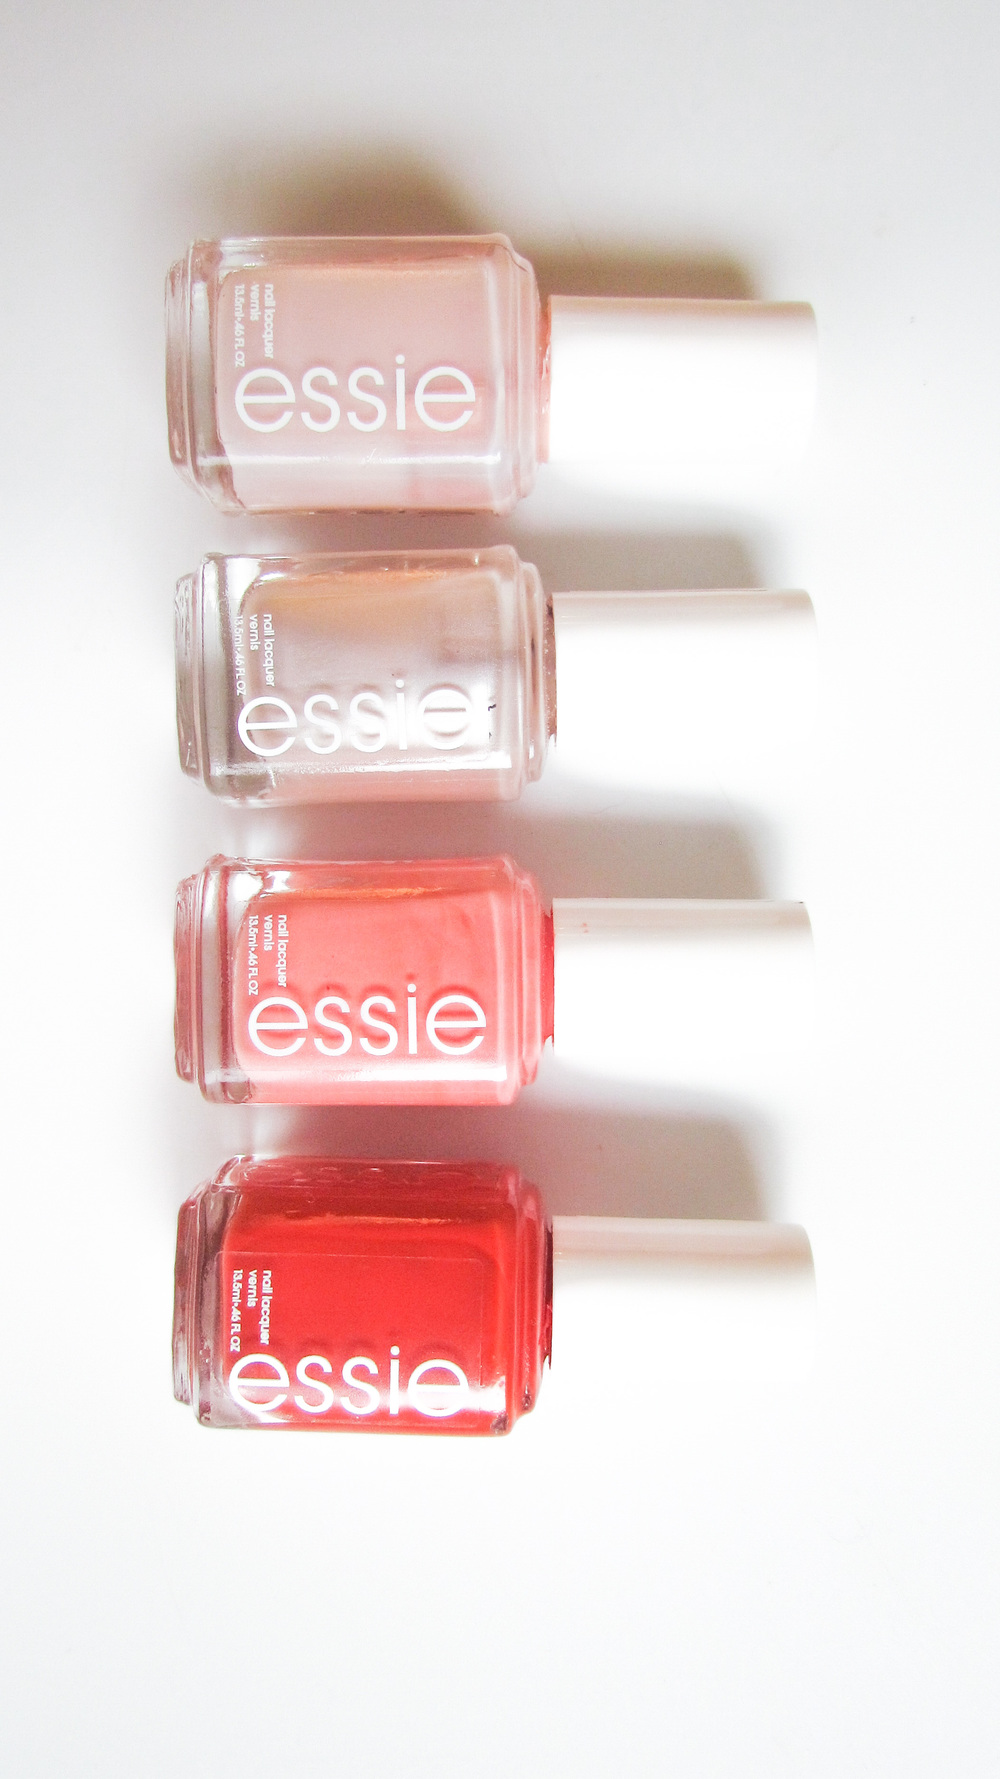 Essie Polishes in Imported Bubbly, Sugar Daddy, Tarte Deco, and Meet Me at Sunset - Southern New Yorker